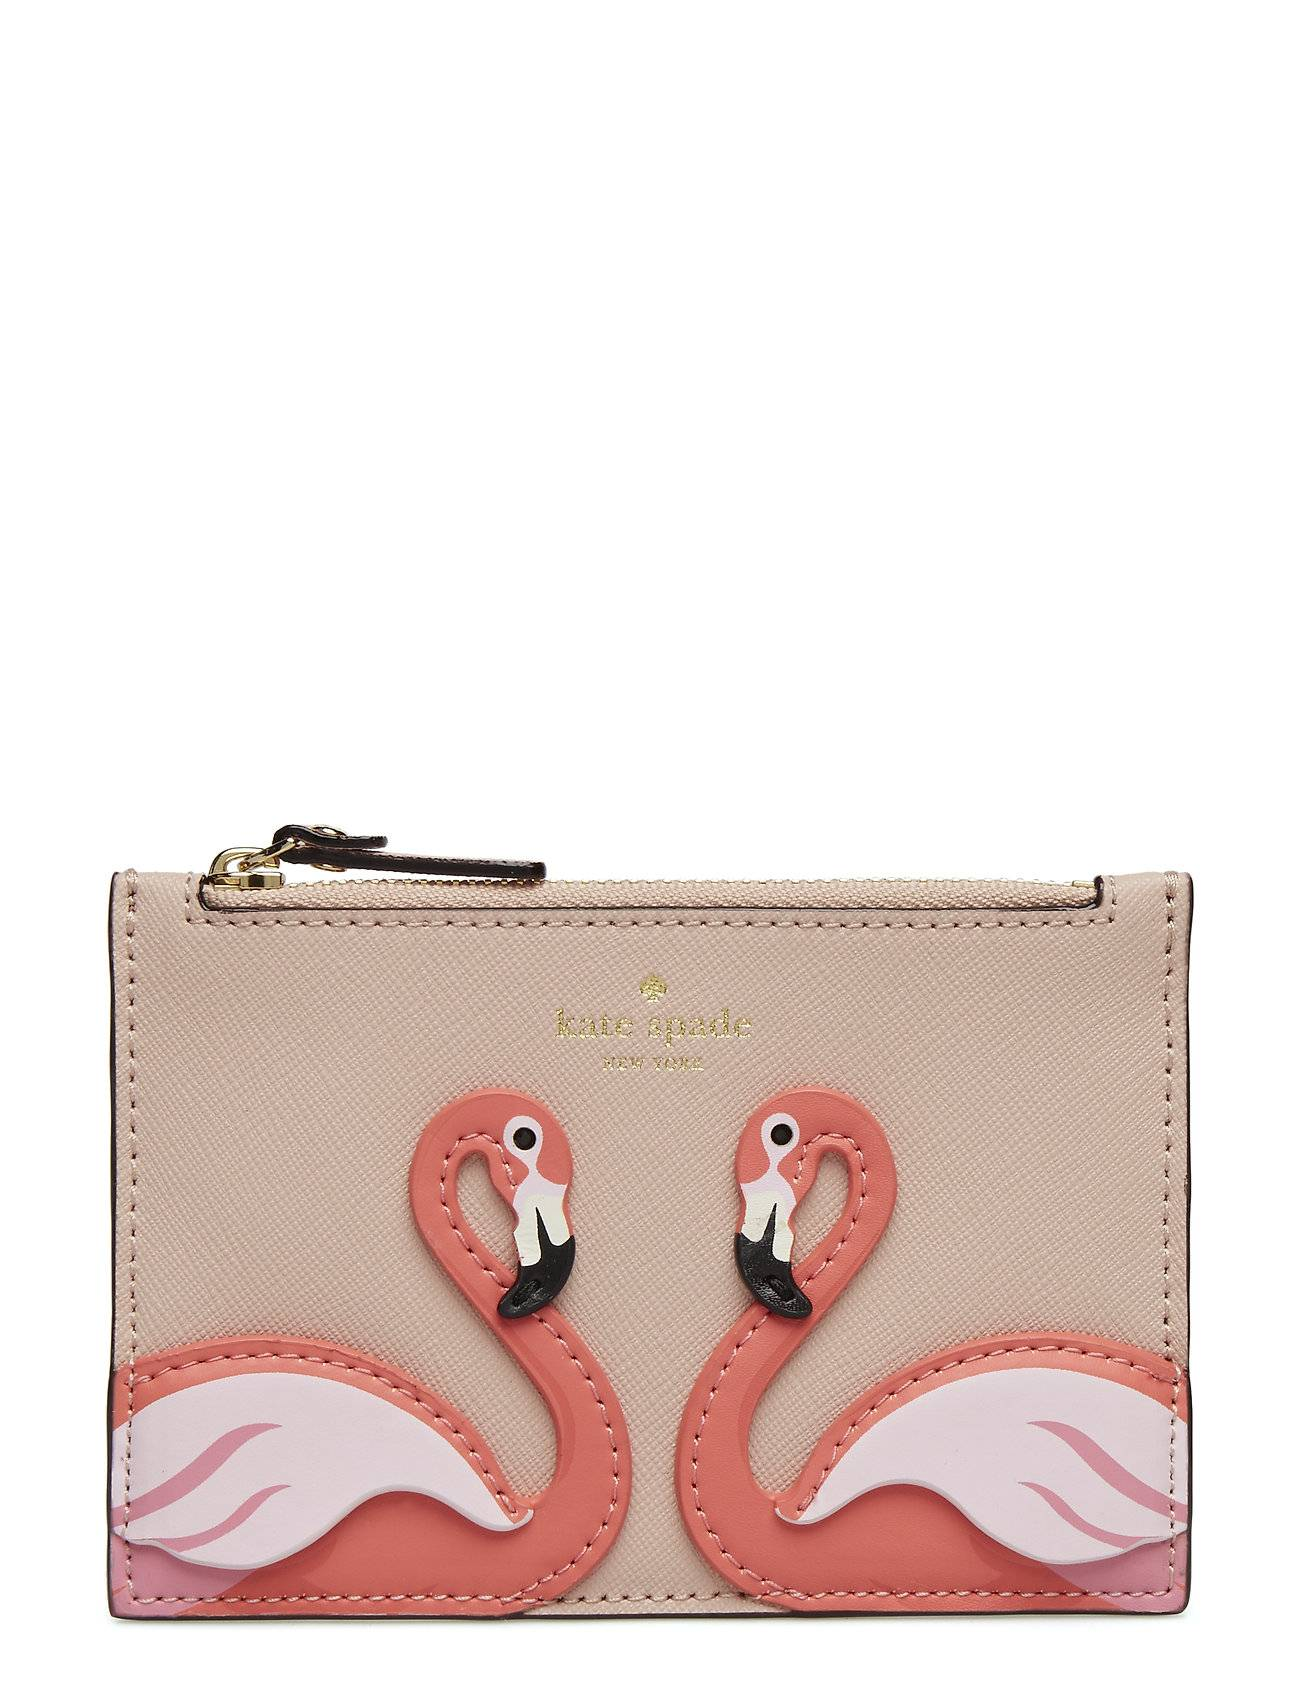 Kate Spade New York By The Poolflamingo Marley